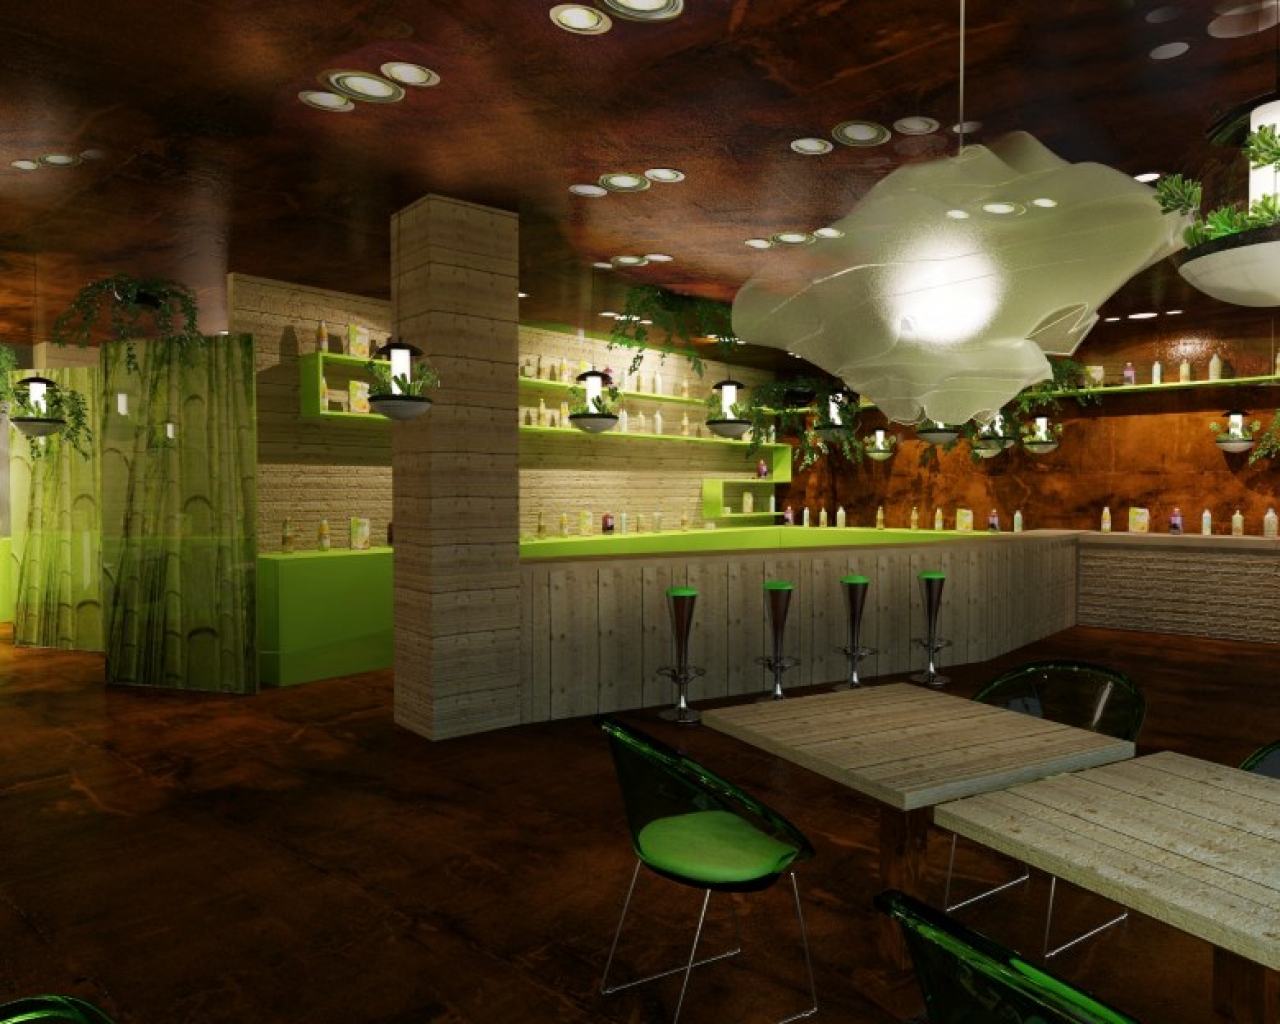 Contemporary restaurant bar interior design ideas for Restaurant interior designs ideas